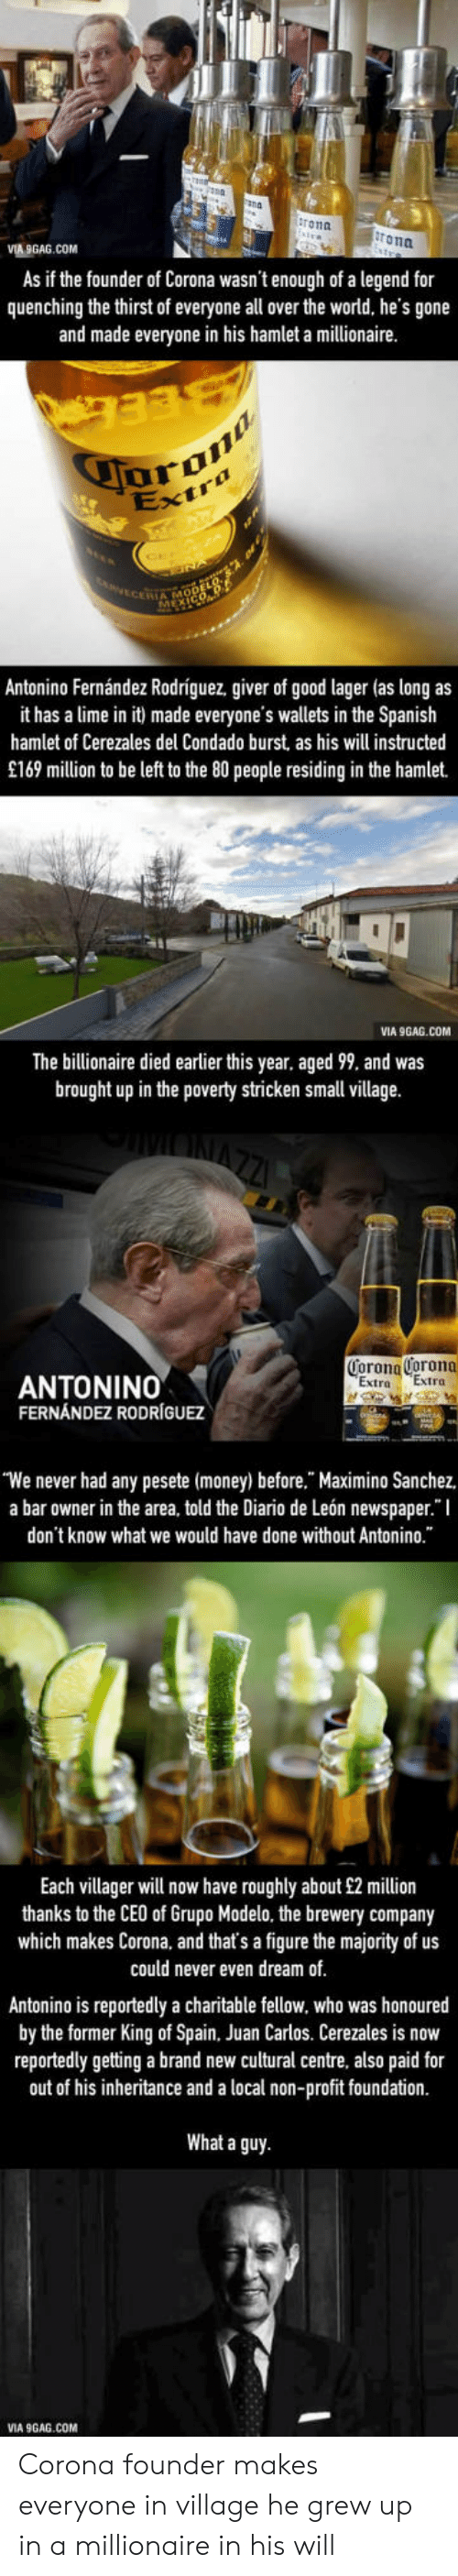 "9gag, Hamlet, and Money: ron  rona  MA GAG.COM  As if the founder of Corona wasn't enough of a legend for  quenching the thirst of everyone all over the world, he's gone  and made everyone in his hamlet a millionaire  aran  IA MO  Antonino Fernández Rodriguez, giver of good lager (as long as  it has a lime in it made everyone's wallets in the Spanish  hamlet of Cerezales his will instructed  del Condado burst as  £169 million to be left to the 80 people residing in the hamlet.  VIA 9GAG.COM  The billionaire died earlier this year, aged 99, and was  brought up in the poverty stricken small village.  Corona Corona  Extra Extra  ANTONINO  FERNÁNDEZ RODRÍGUEZ  'We never had any pesete (money) before."" Maximino Sanchez  a bar owner in the area, told the Diario de León newspaper."" I  don't know what we would have done without Antonino.""  Each villager will now have roughly about £2 million  thanks to the CEO of Grupo Modelo, the brewery company  which makes Corona, and that's a figure the majority of us  could never even dream of  Antonino is reportedly a charitable fellow, who was honoured  by the former King ofSpain, Juan Carlos. Cerezales is now  reportedly getting a brand new cultural centre, also paid for  out of his inheritance and a local non-profit foundation.  What a guy  VIA 9GAG.COM Corona founder makes everyone in village he grew up in a millionaire in his will"